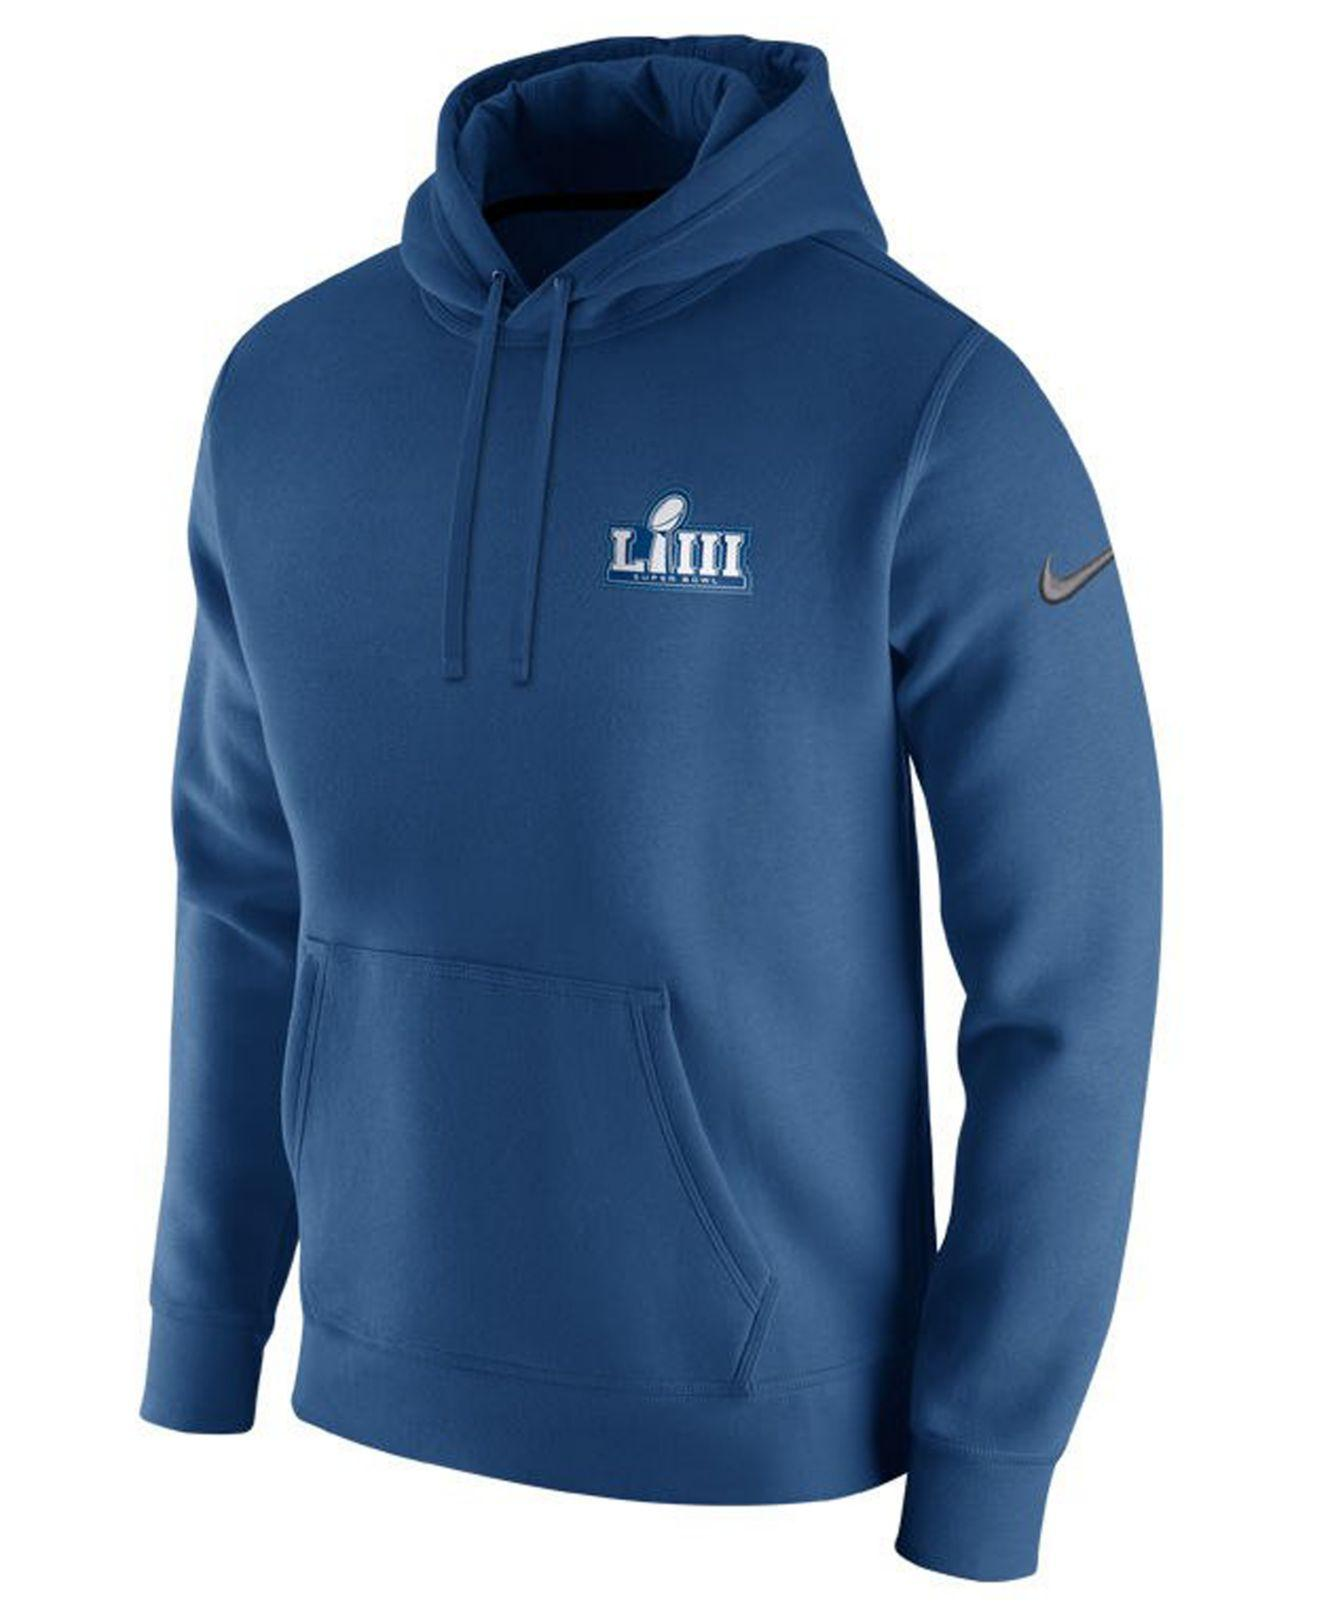 098fb7bb Nike Super Bowl Liii Club Fleece Pullover Hoodie in Blue for Men - Lyst